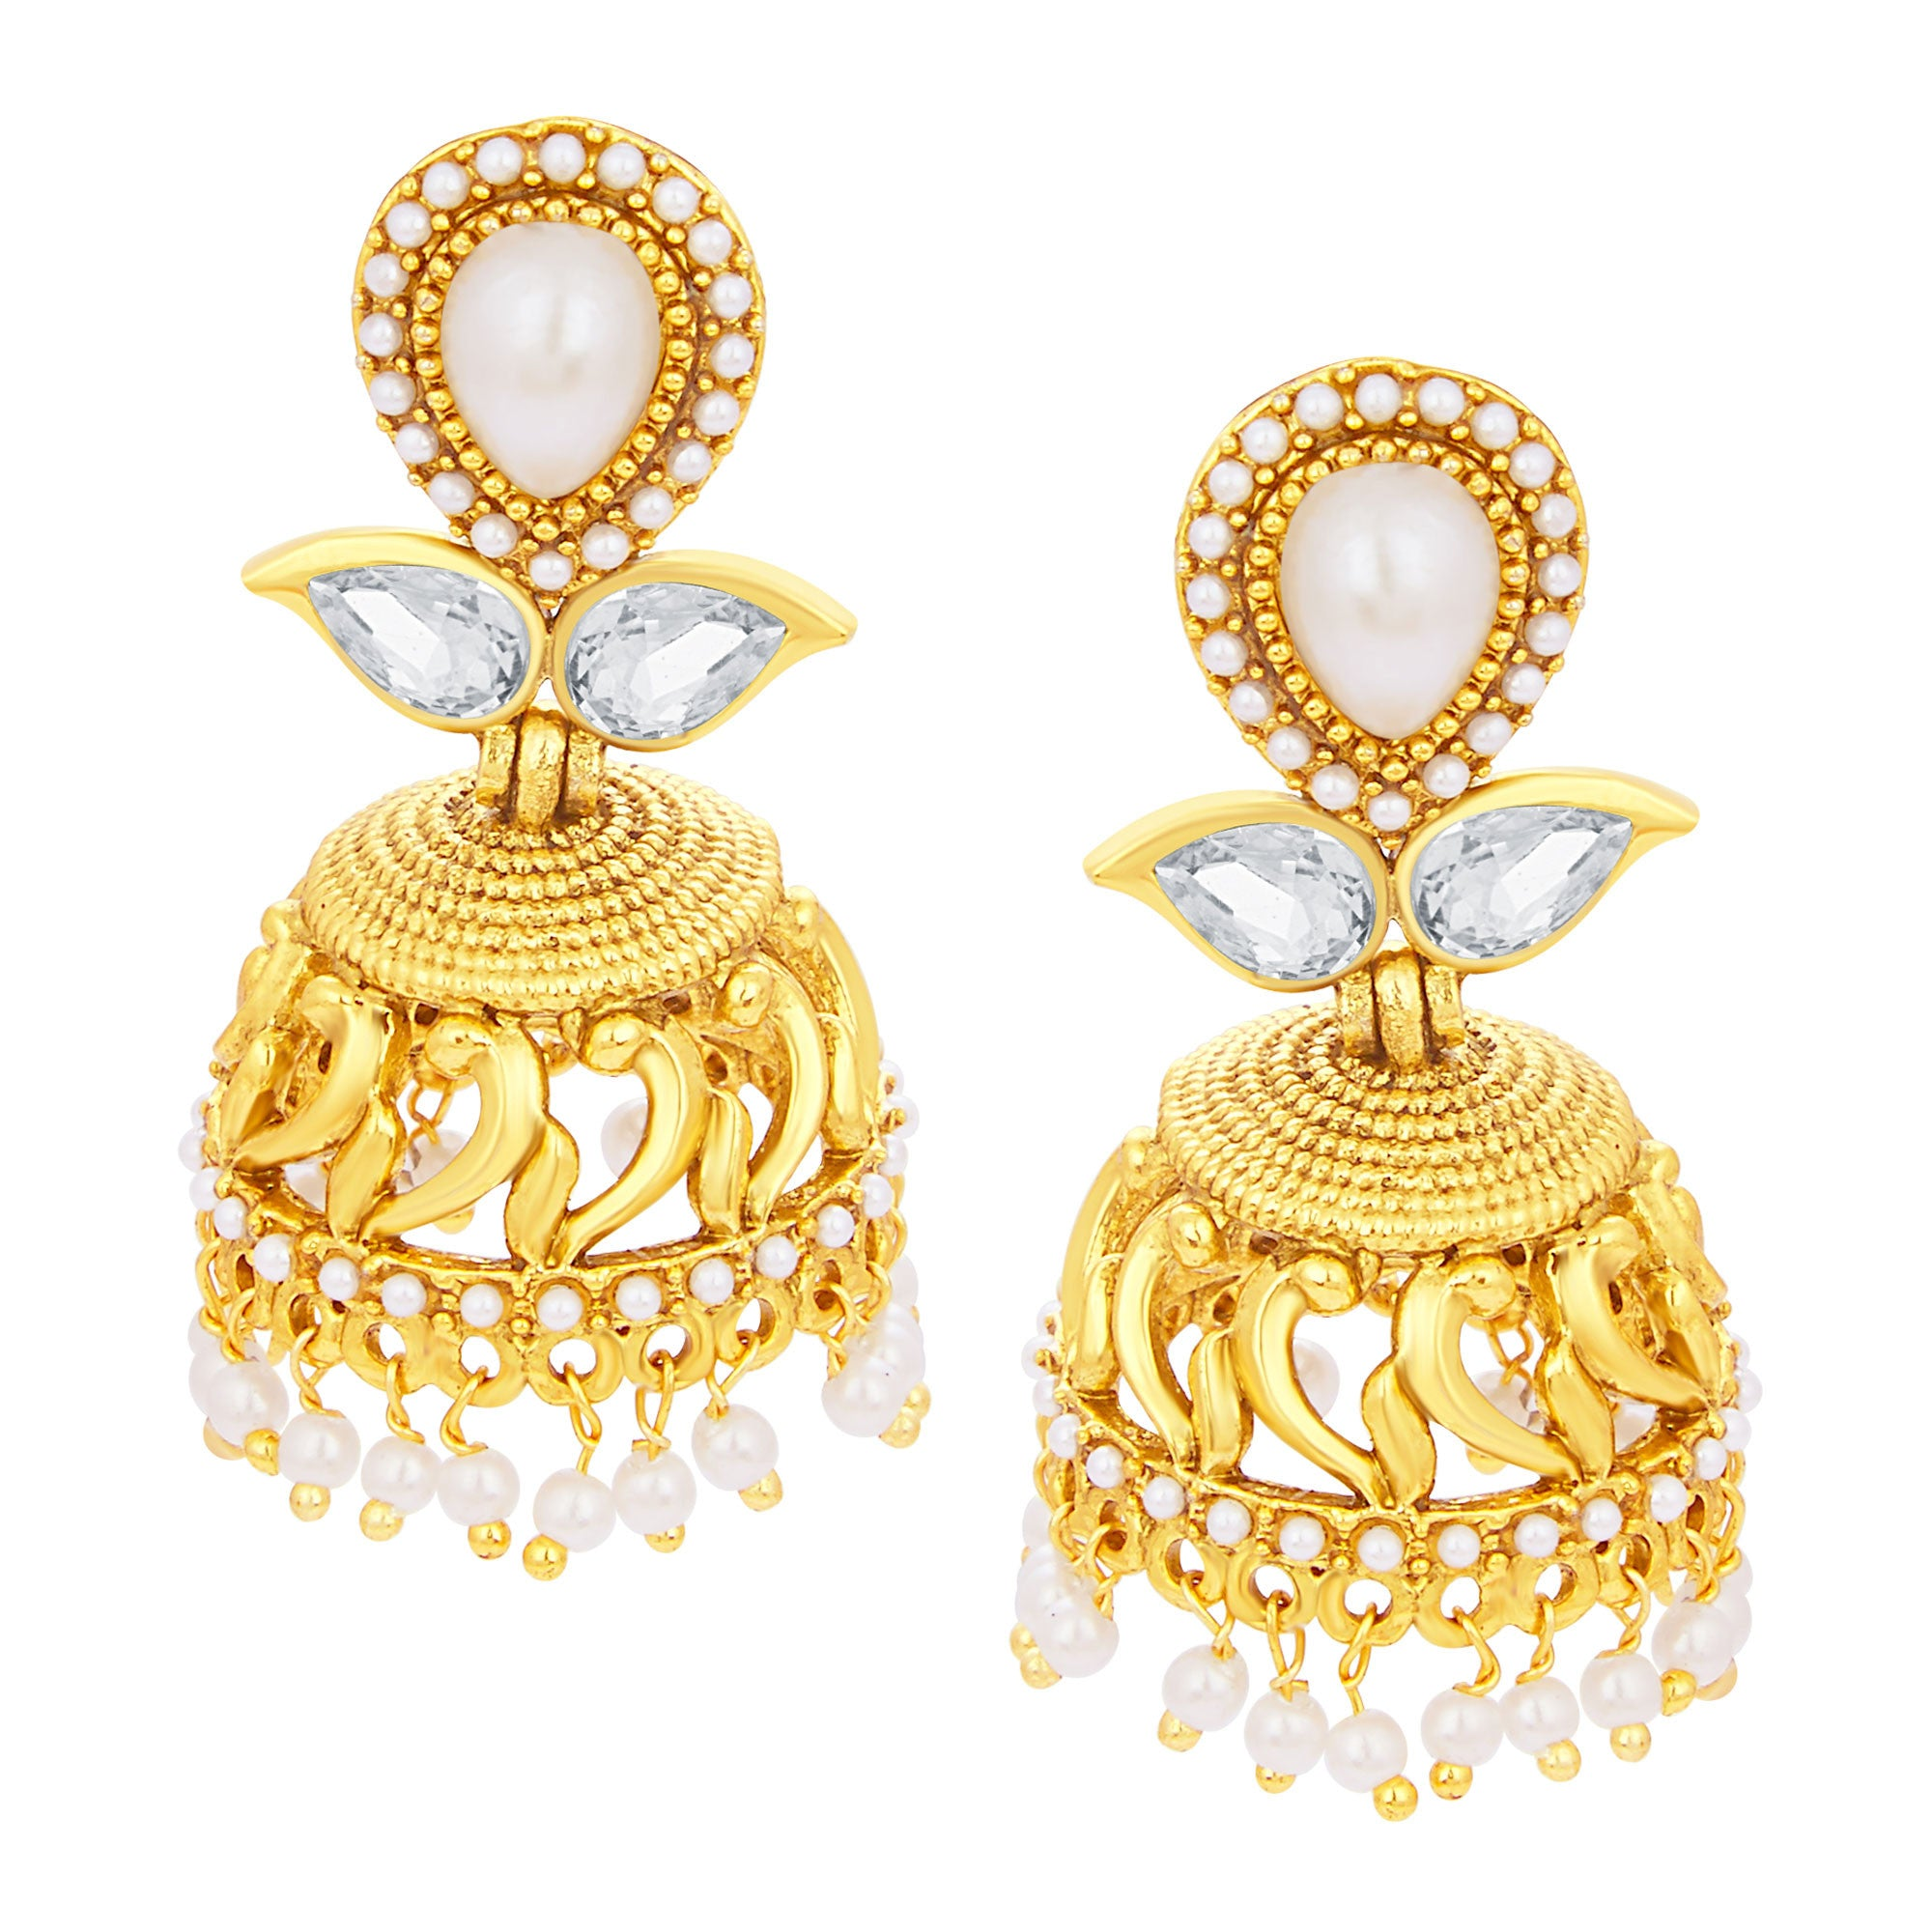 earrings store diamond diamon jewelry com american indian swasam stone cz